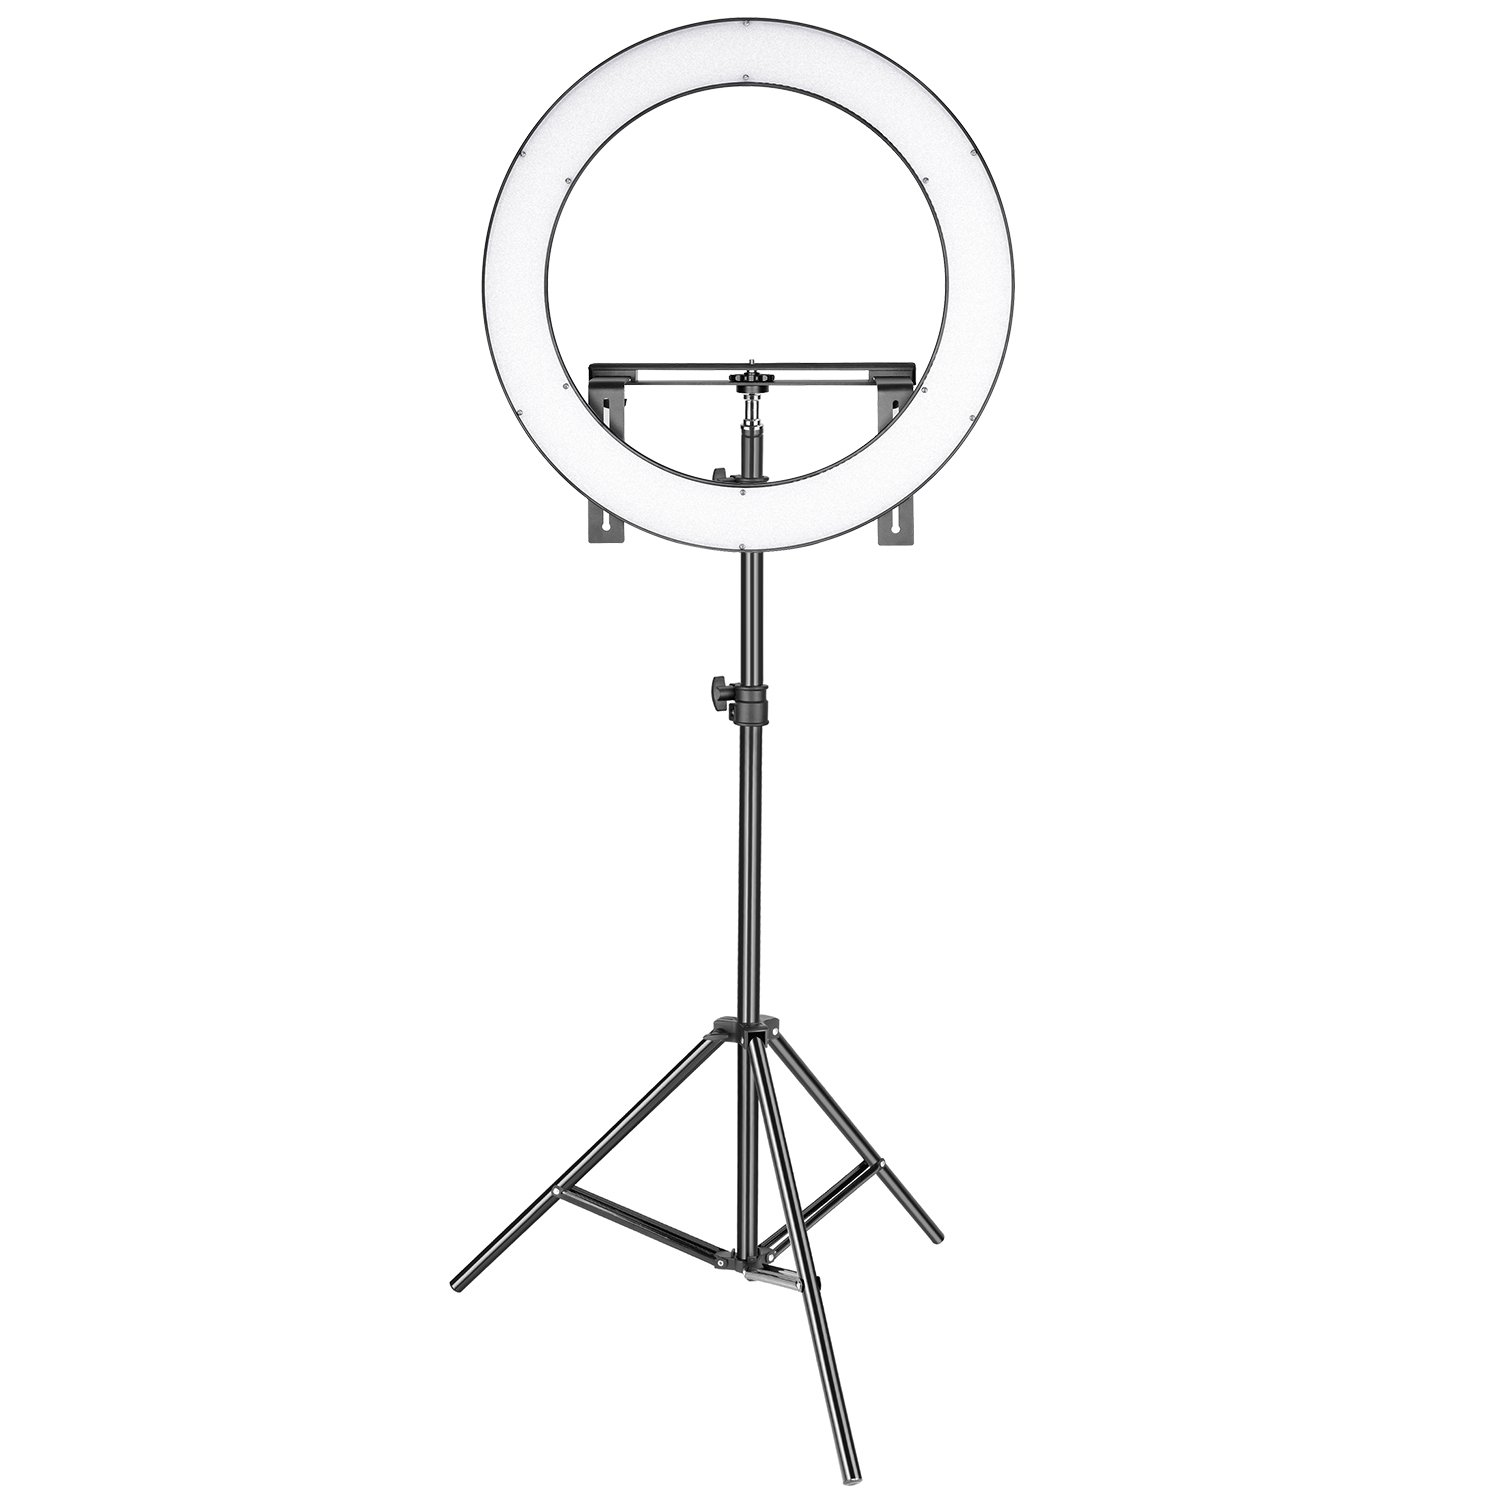 Neewer Photo Studio LED Ring Light Lighting Kit - 19-inch Outer 14-inch Inner 3200-5600K CRI 96+ Dimmable Bi-color SMD LED Ring Light with Bracket, 2-meter Light Stand for Portrait Video Shooting